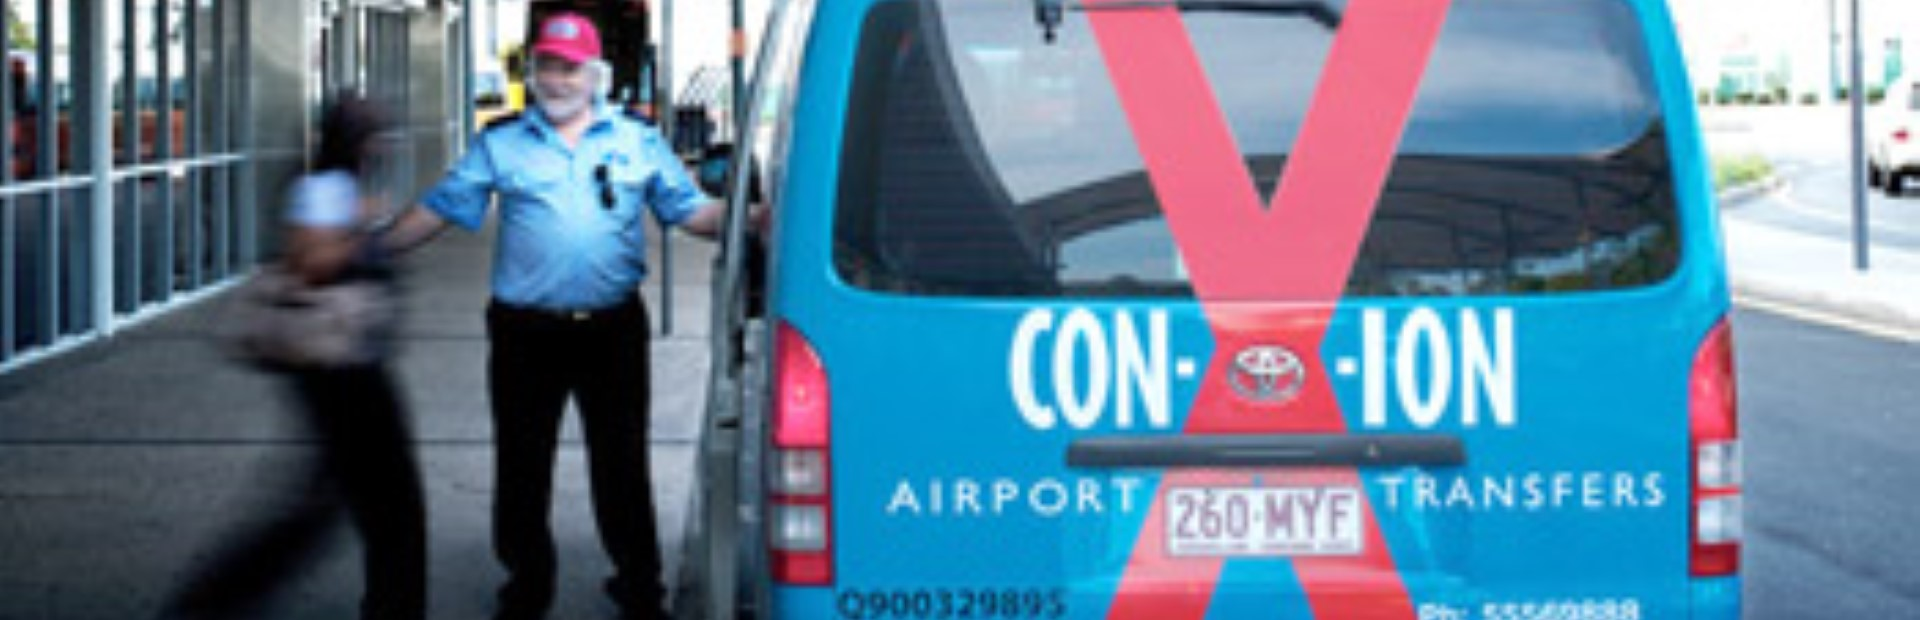 Brisbane Airport to Surfers Paradise shuttle transfer One way - Con-X-ion